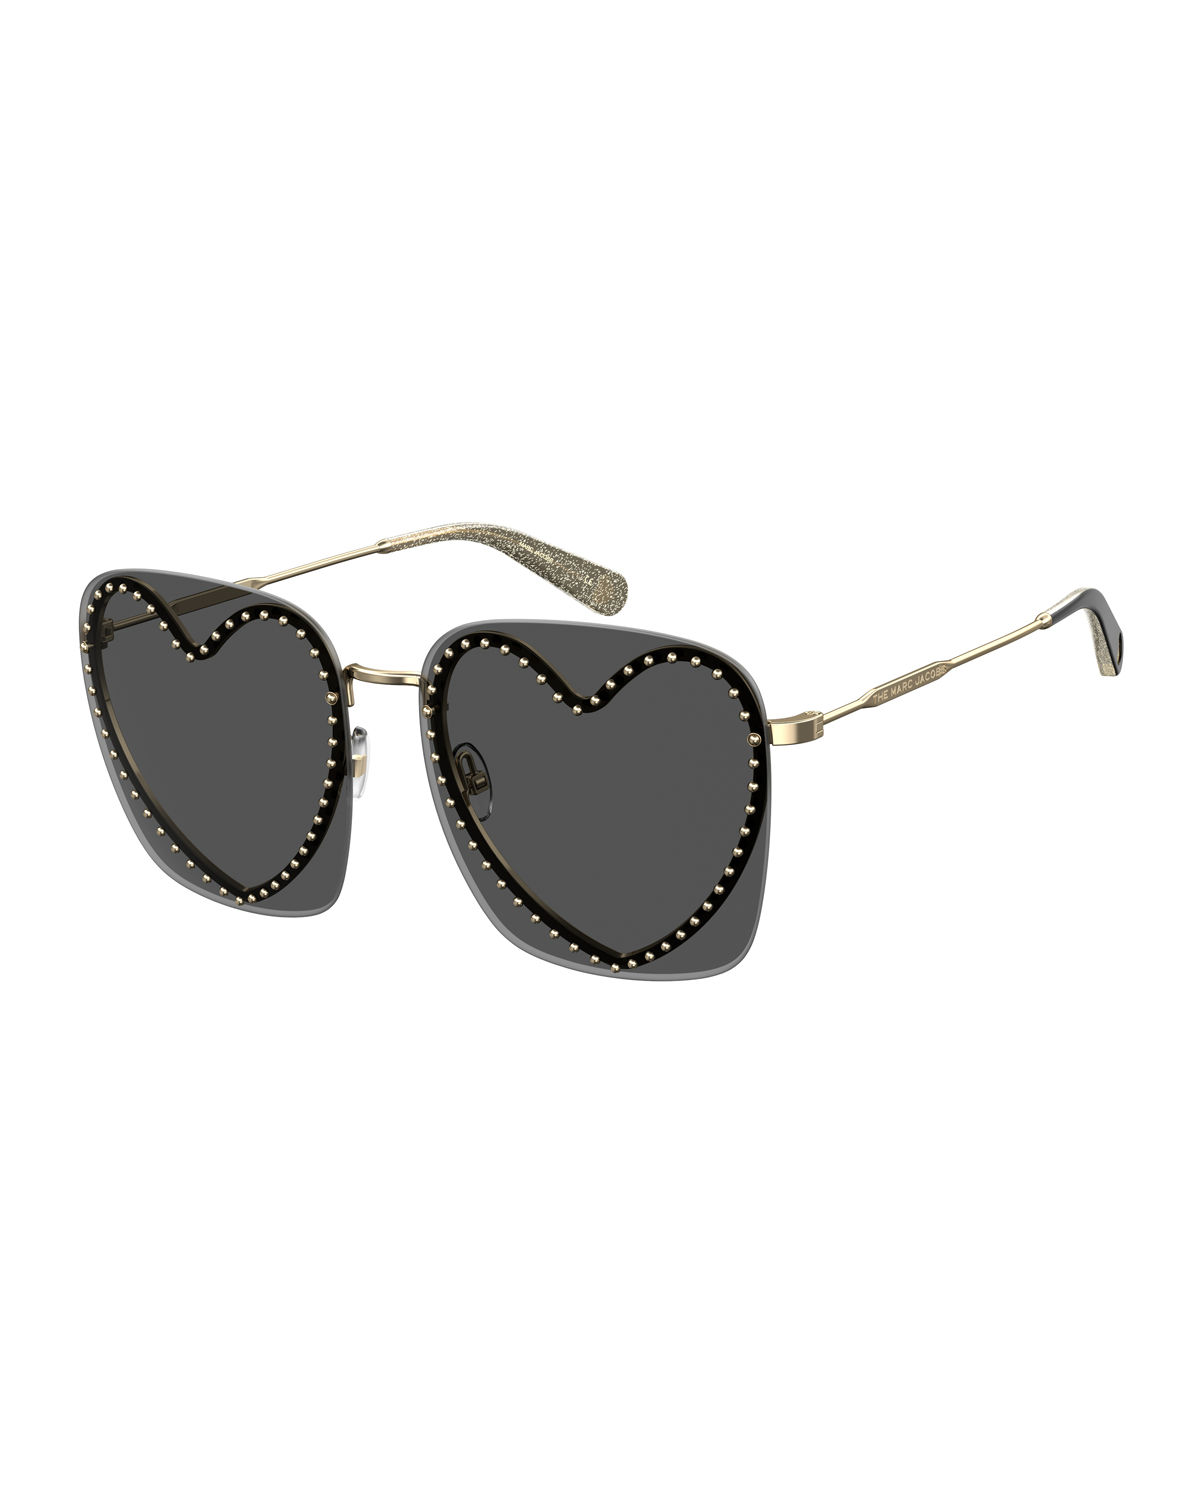 Marc Jacobs OVERSIZED RIMLESS SUNGLASSES WITH HEART-SHAPED FRAME